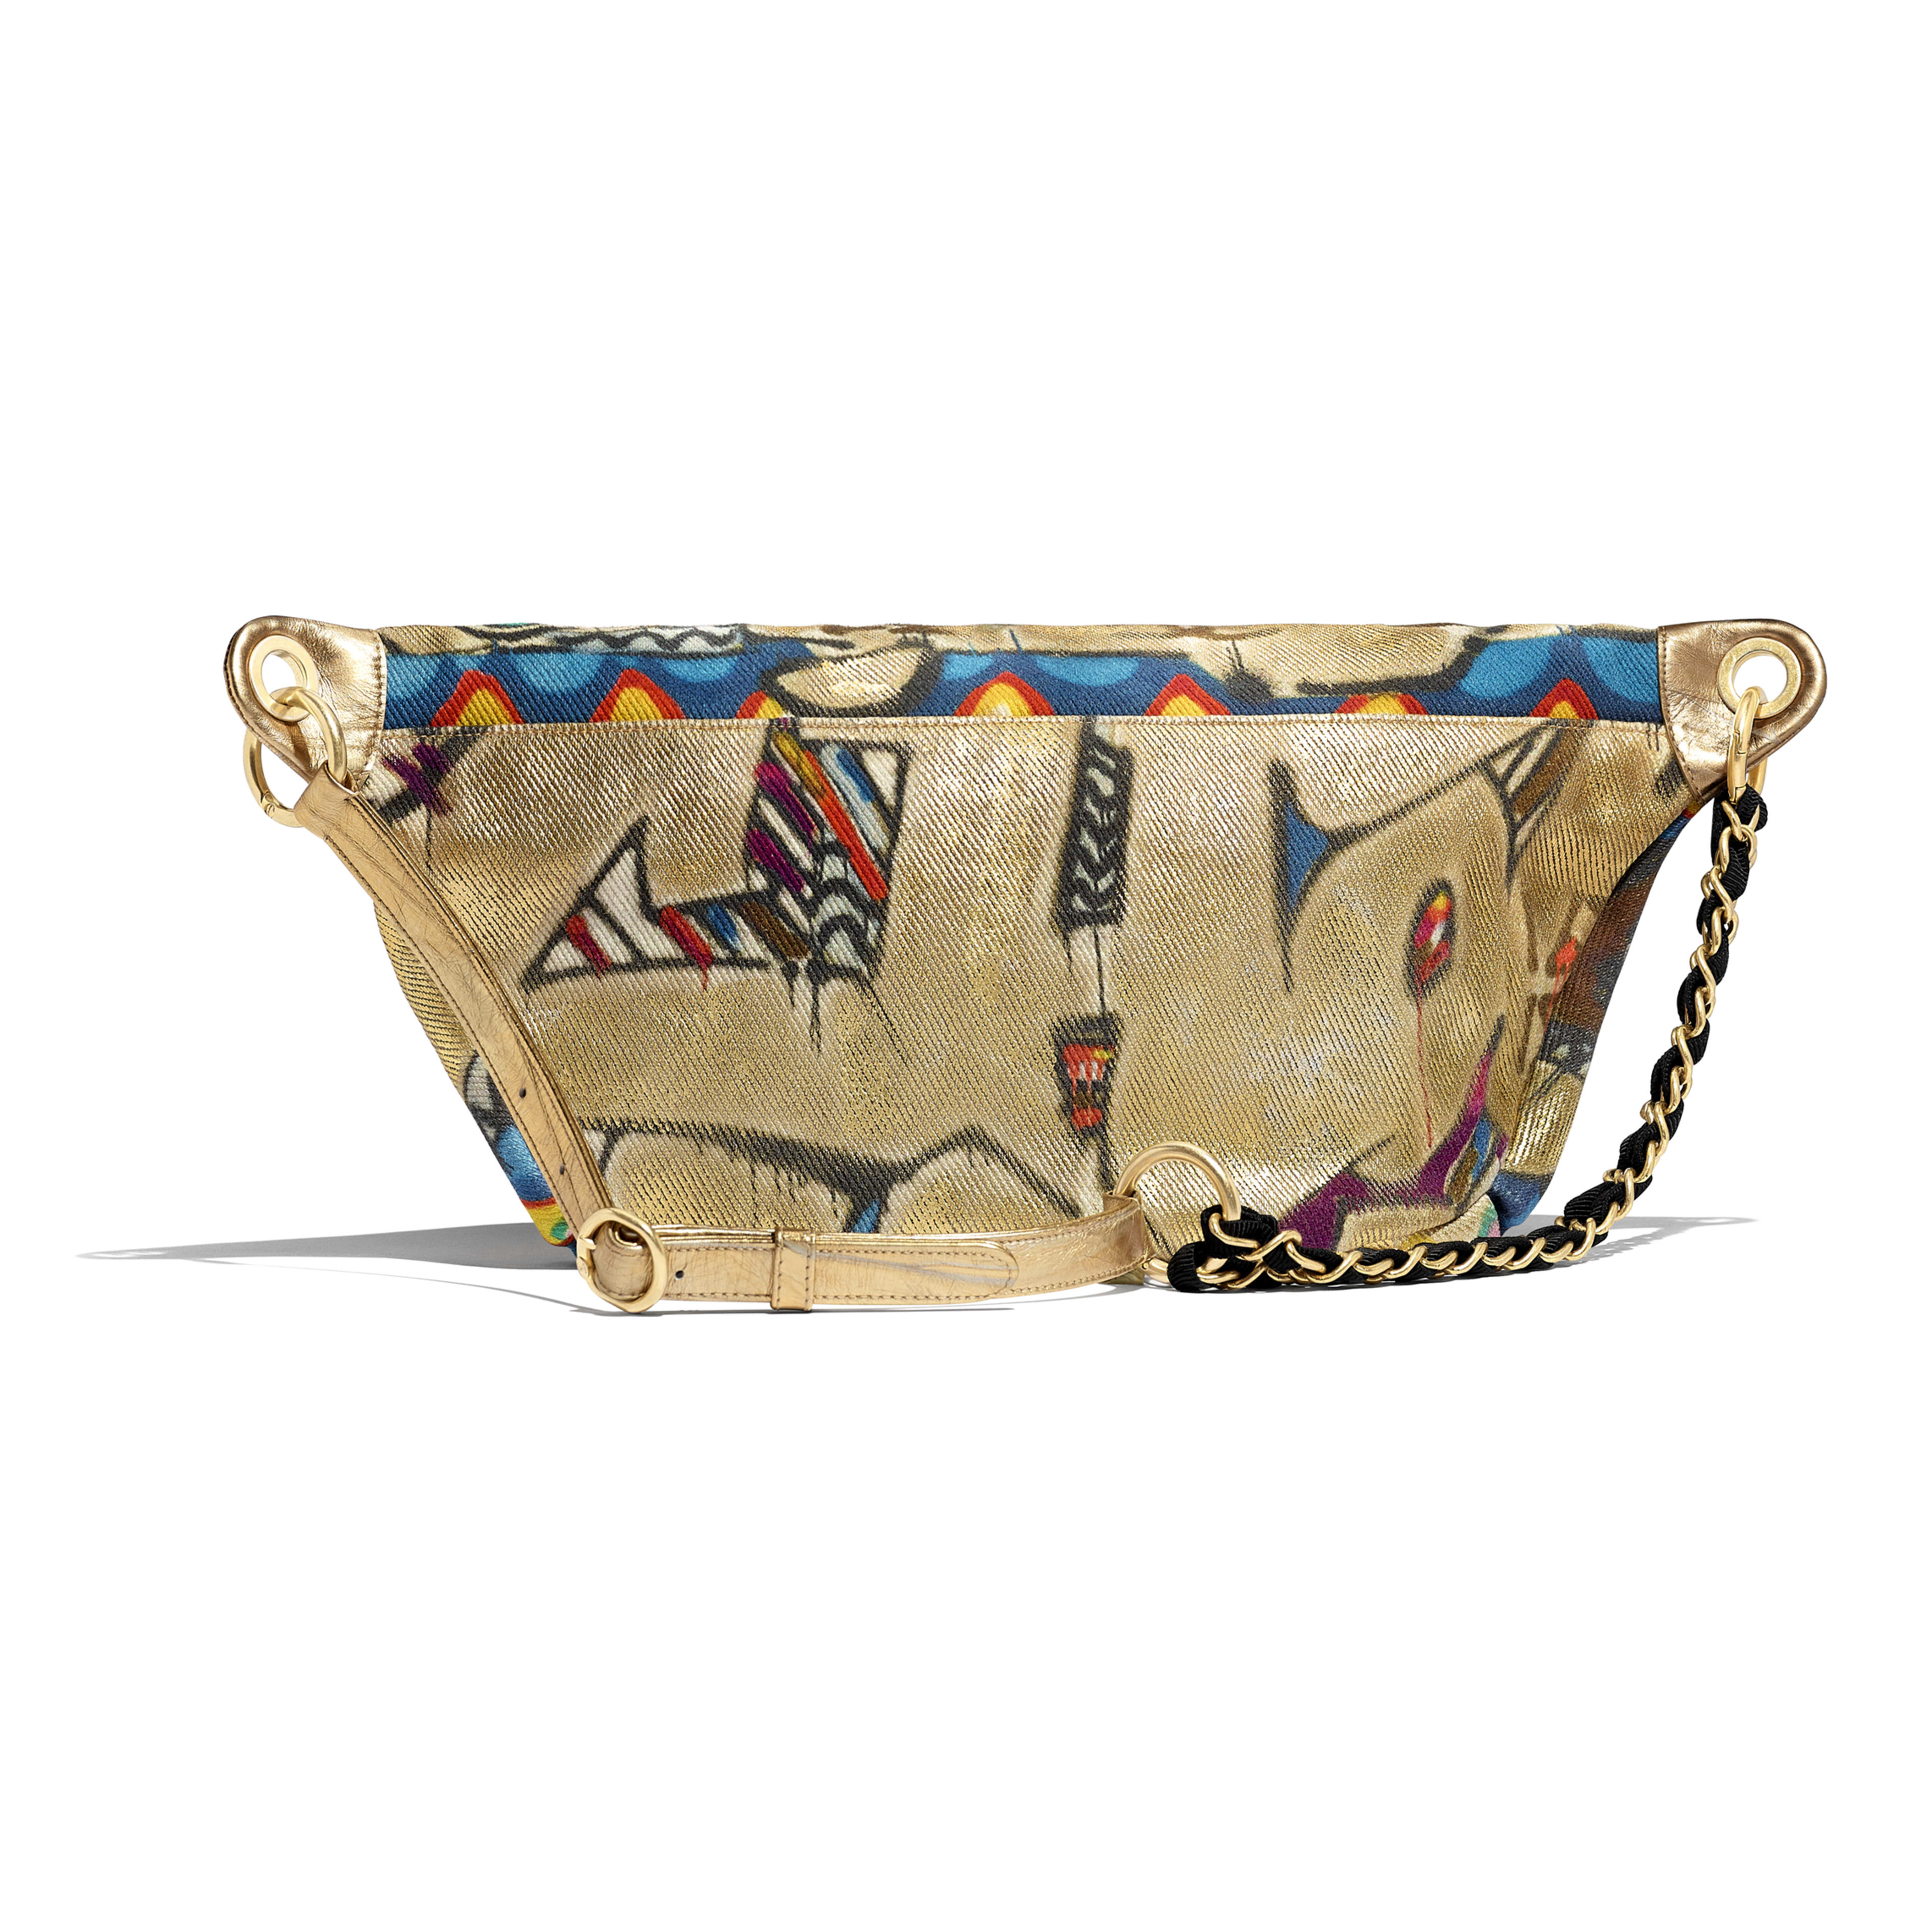 Waist Bag - Multicolor - Calfskin, Cotton & Gold-Tone Metal - Alternative view - see full sized version